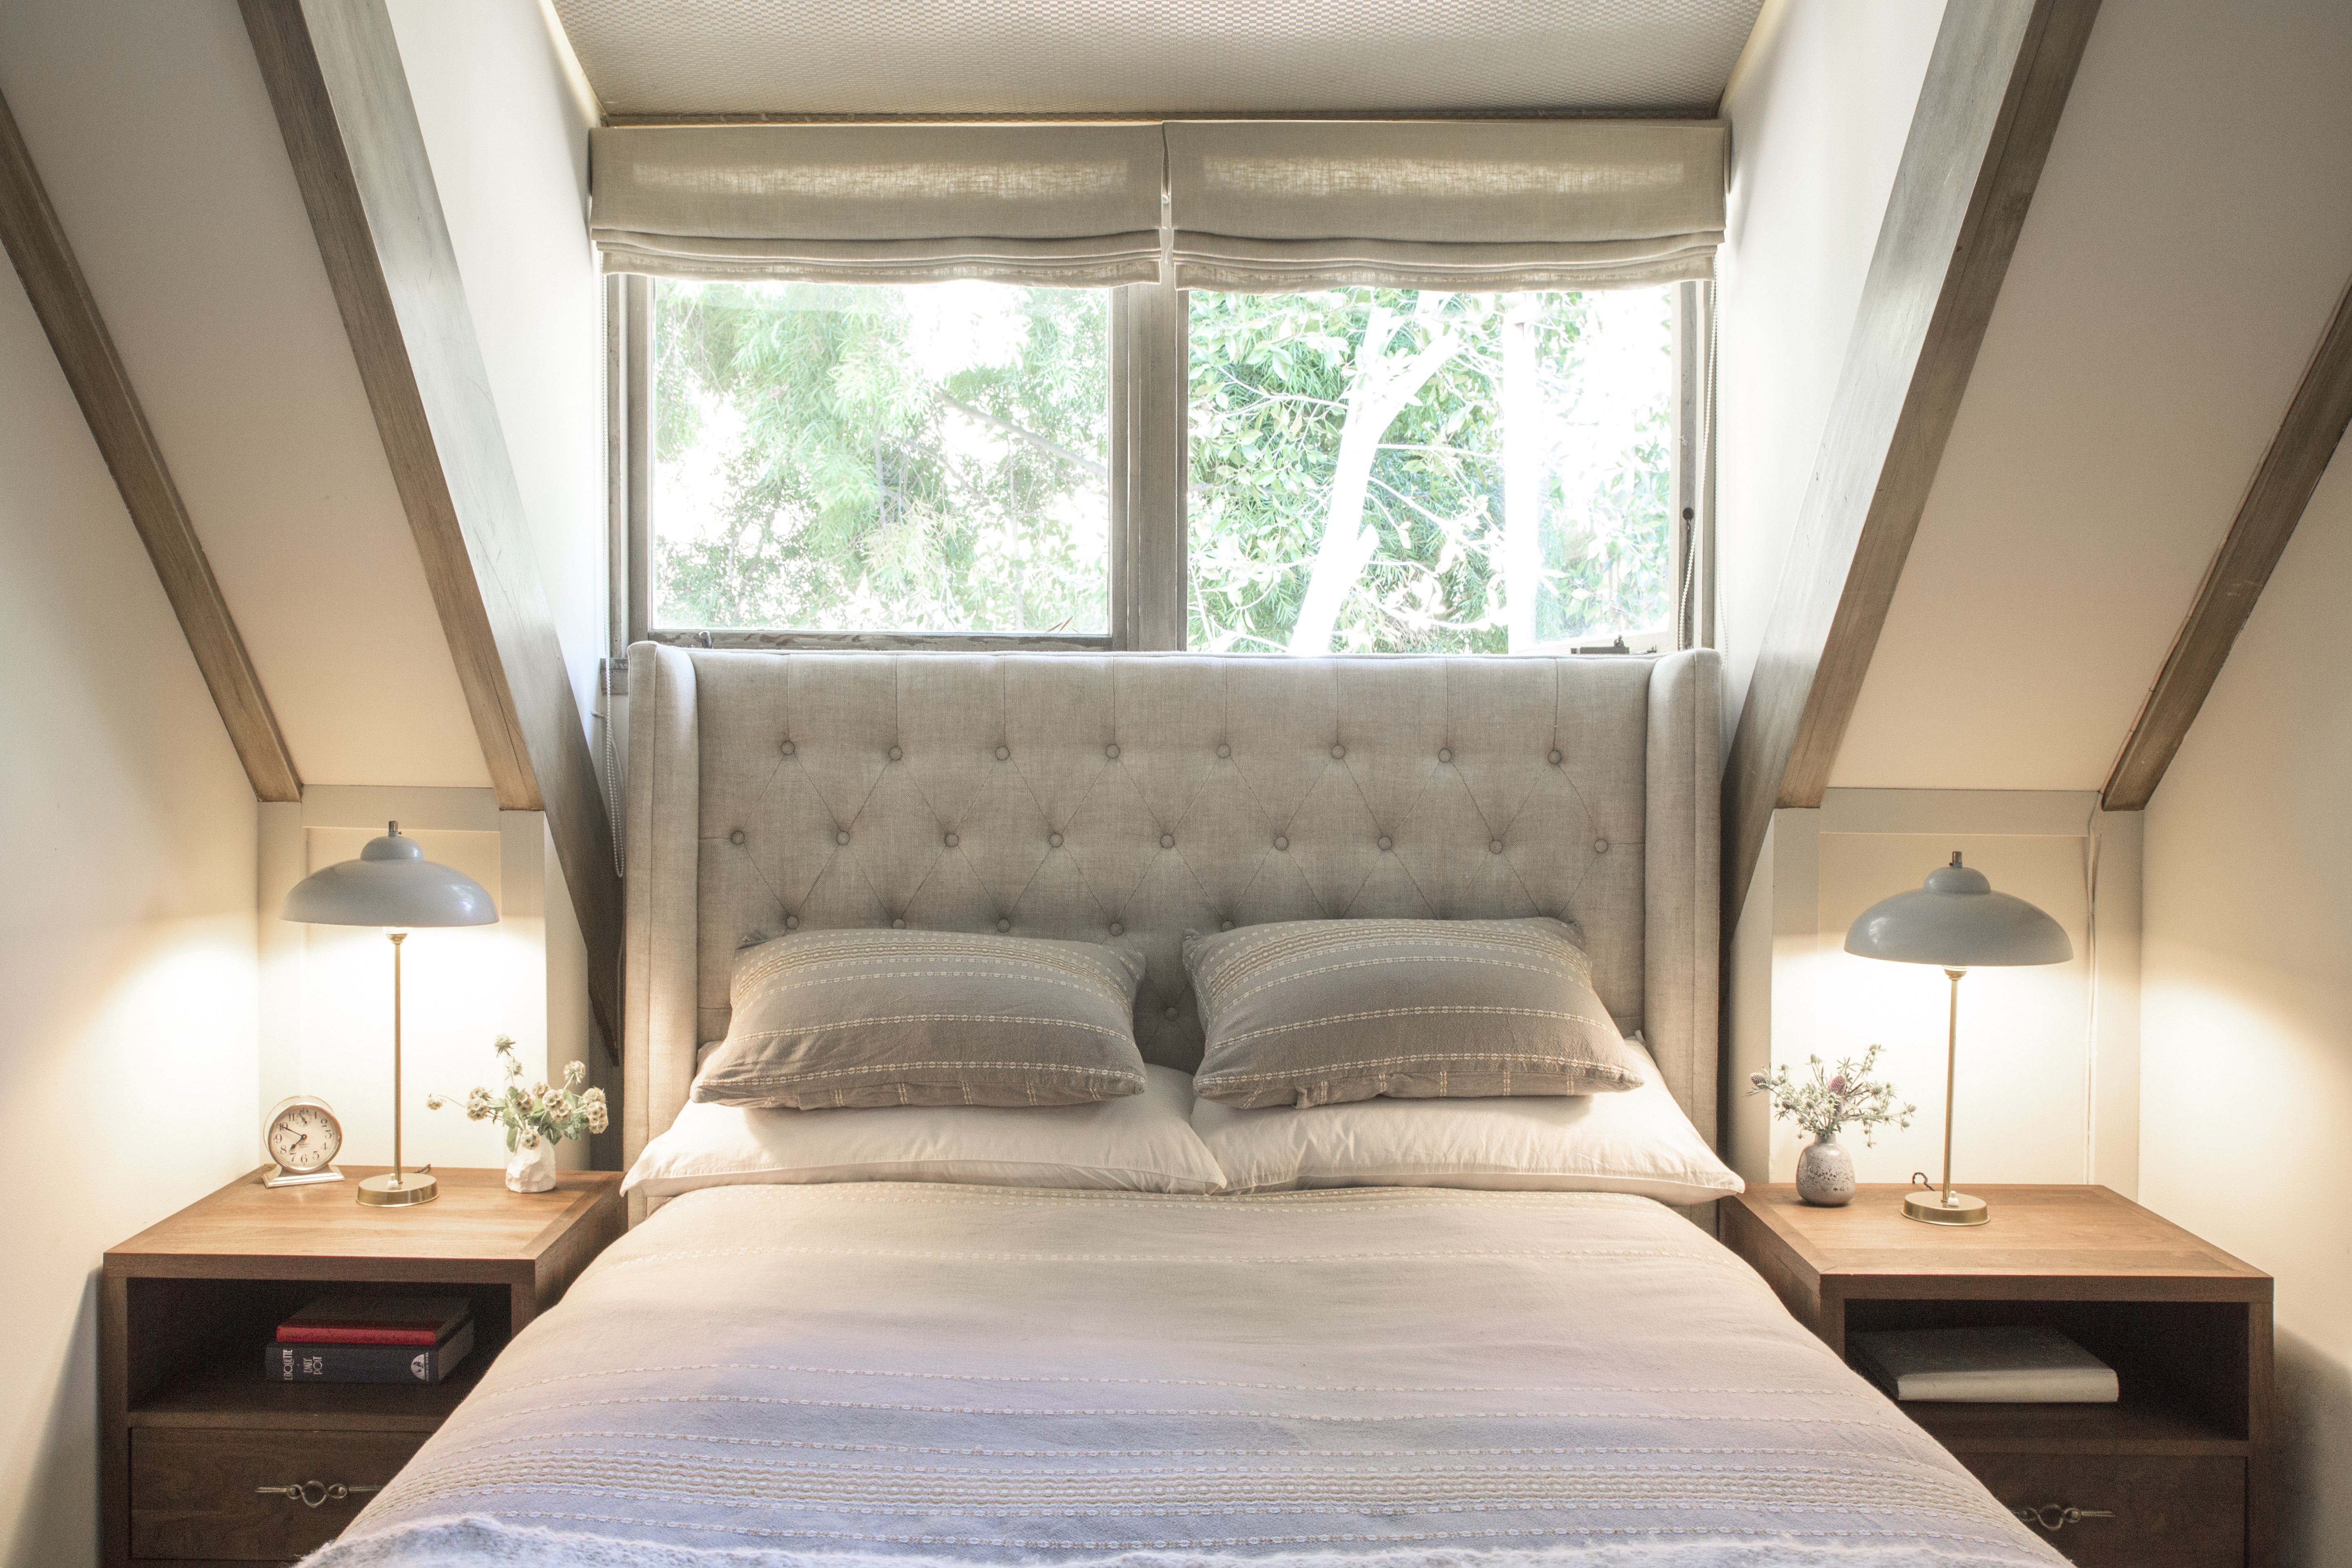 Brass Bedside Lamps in Room With Restoration Hardware Bed